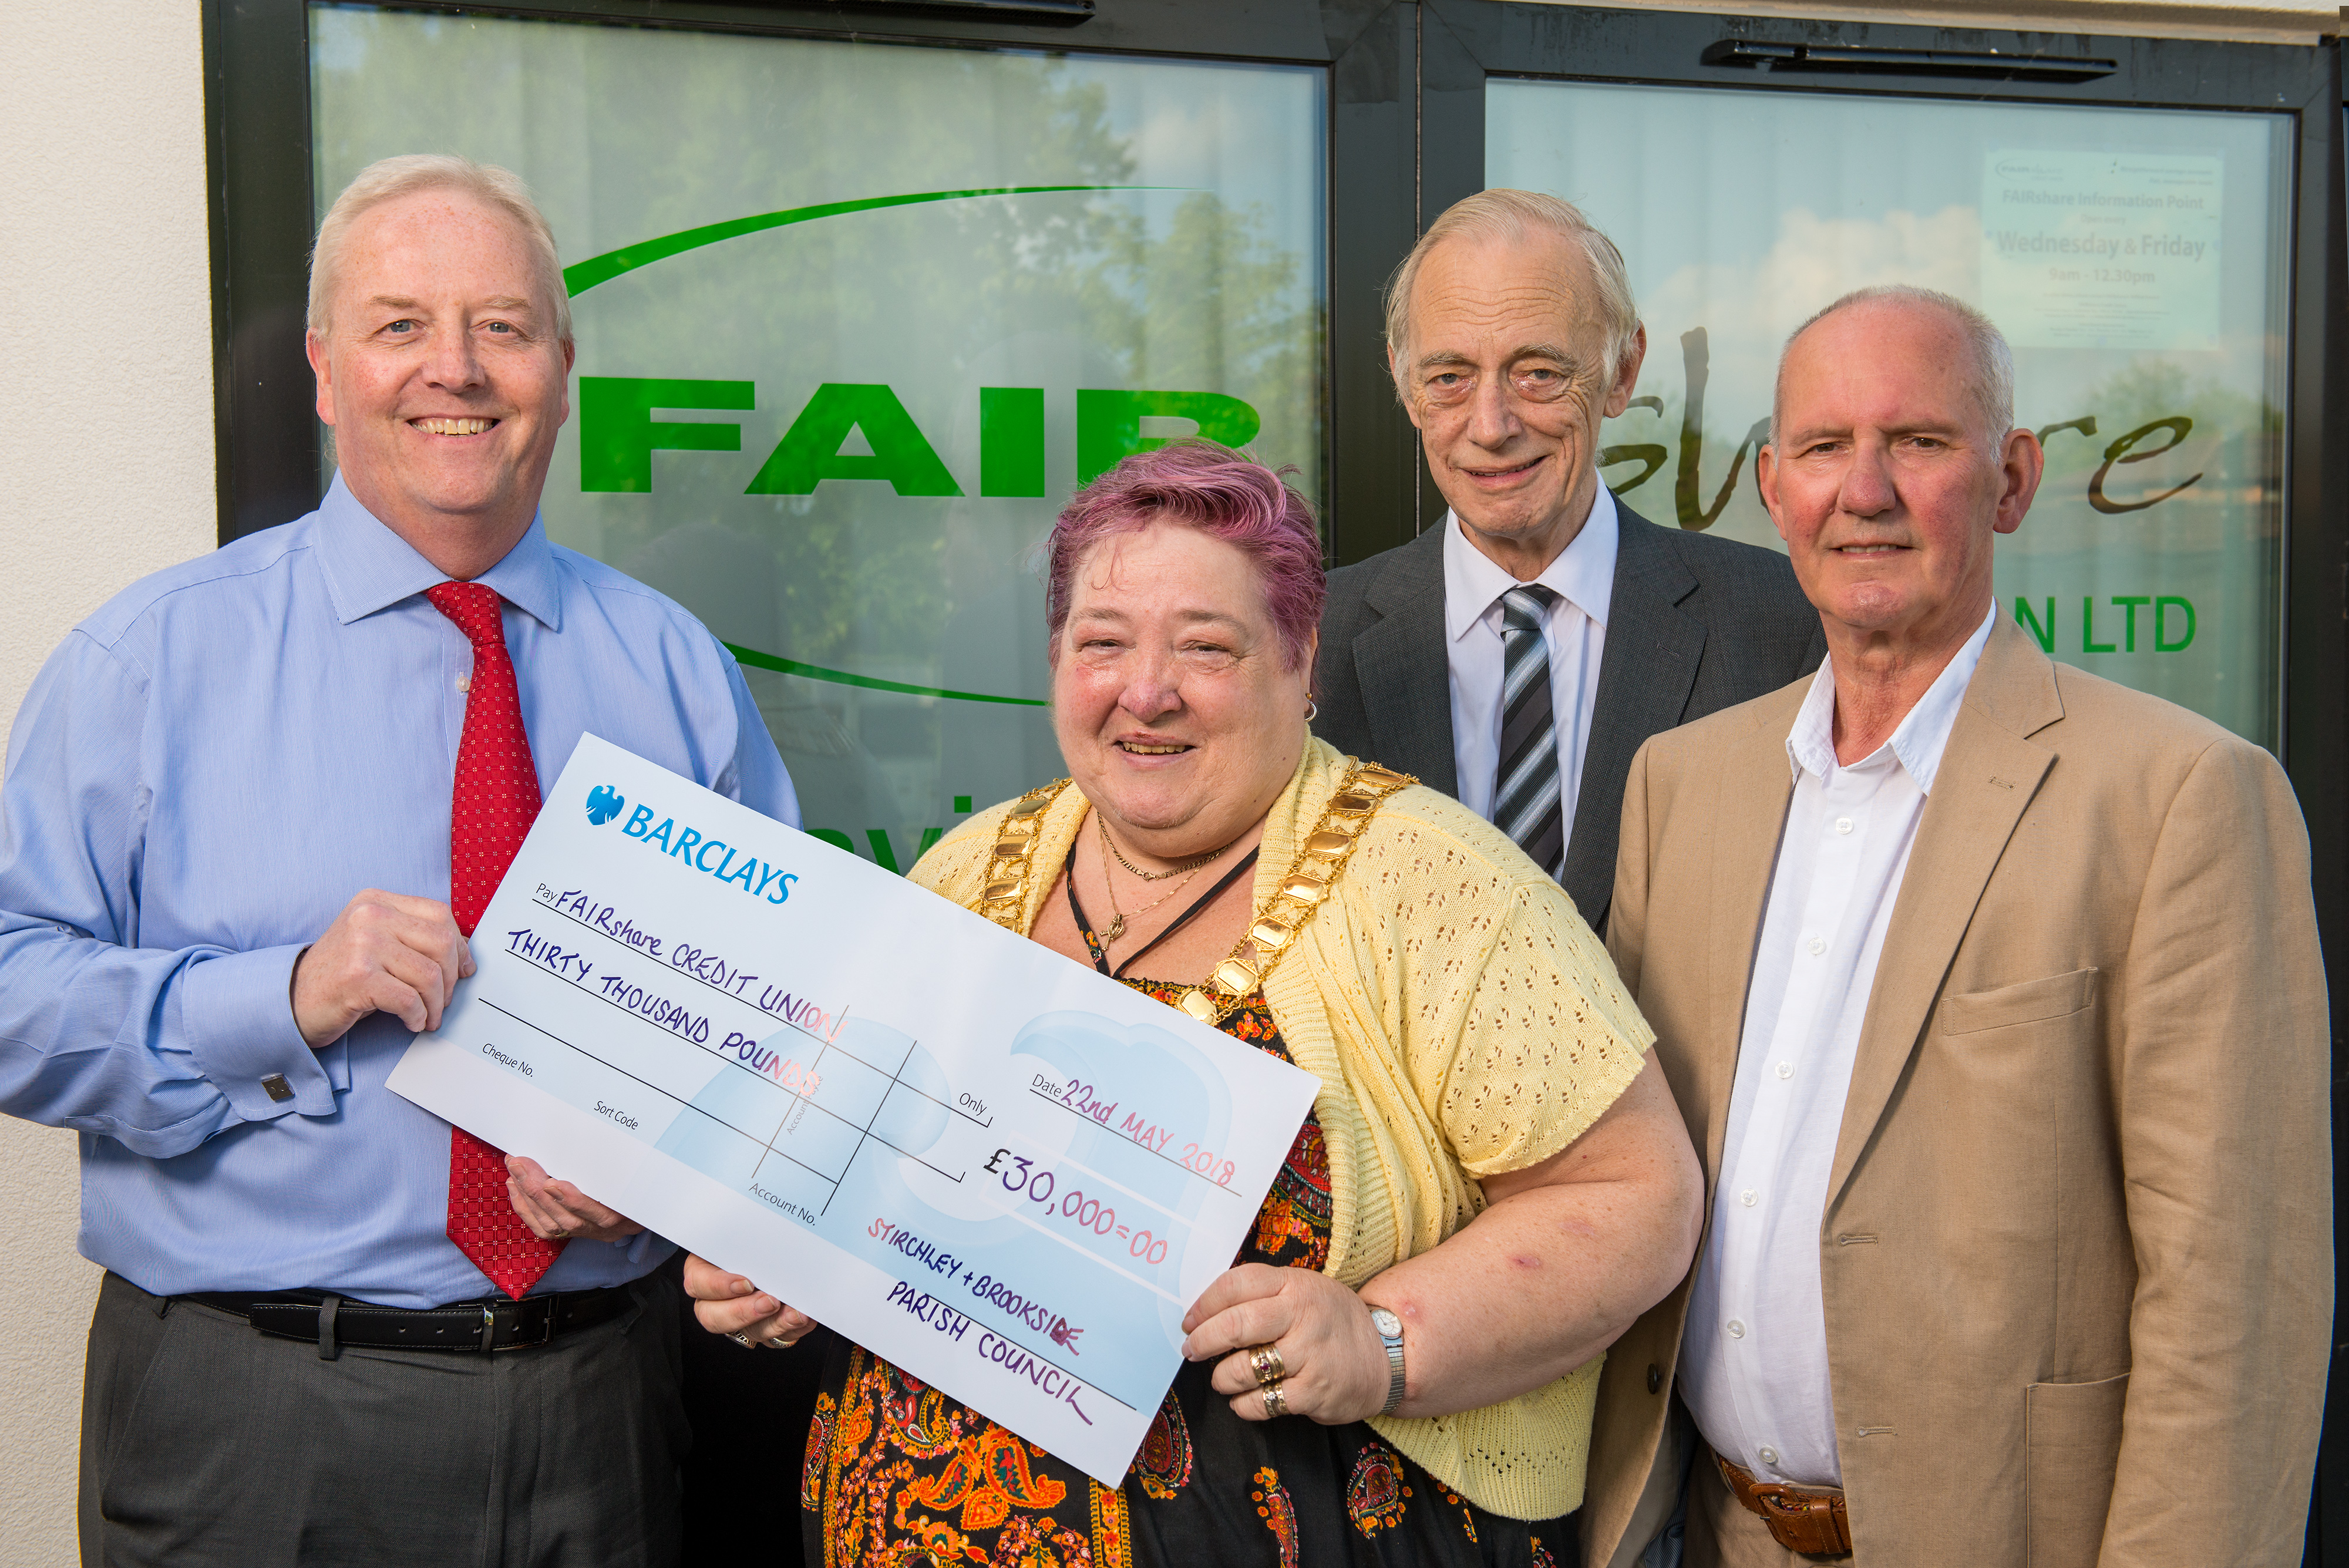 Stirchley & Brookside Parish Council invest with FAIRshare Credit Union